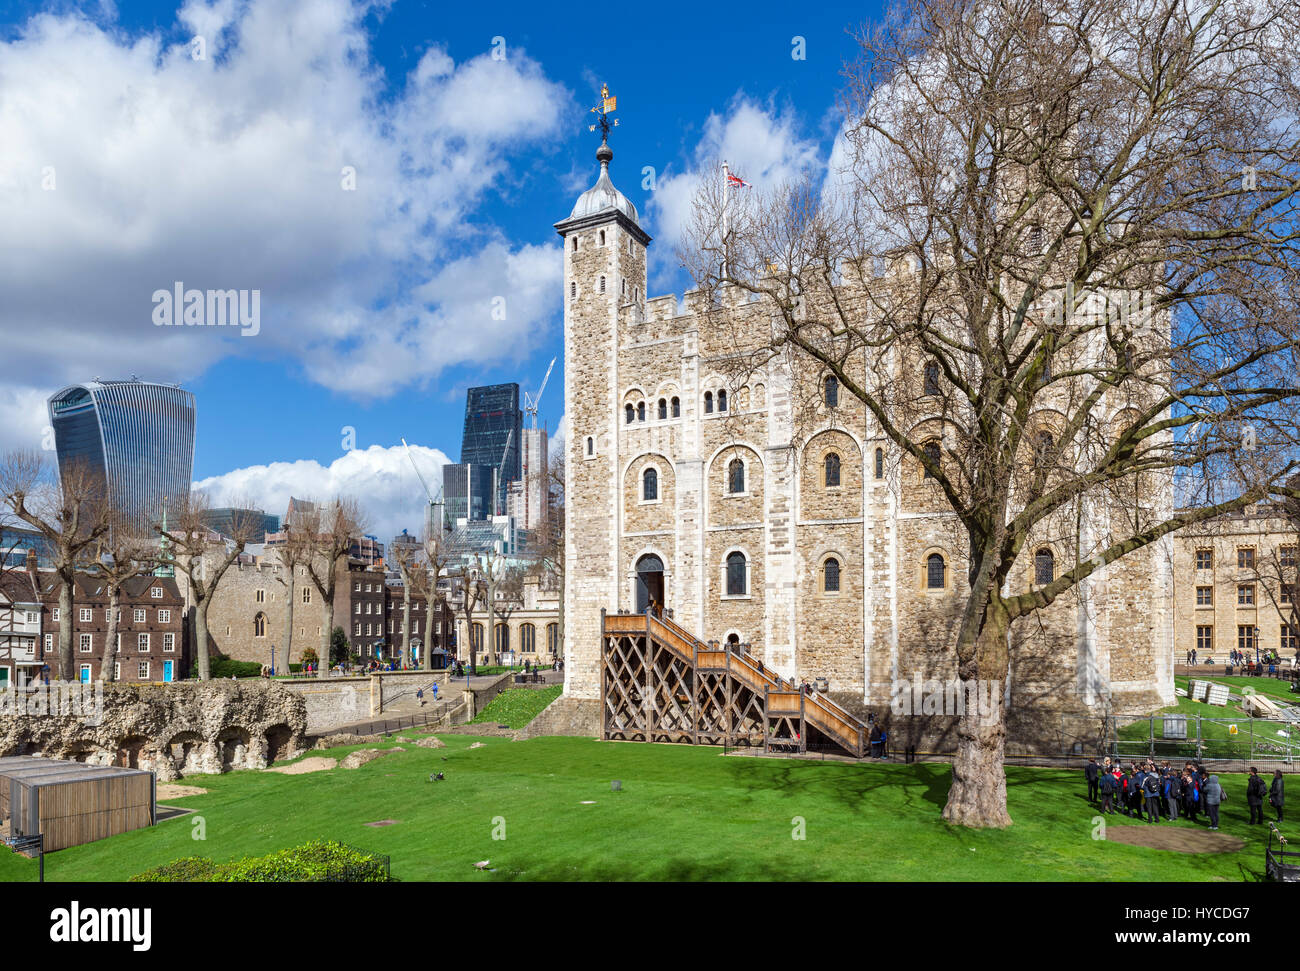 Tower of London. The White Tower with the Walkie Talkie building (20 Fenchurch Street) behind, Tower of London, - Stock Image